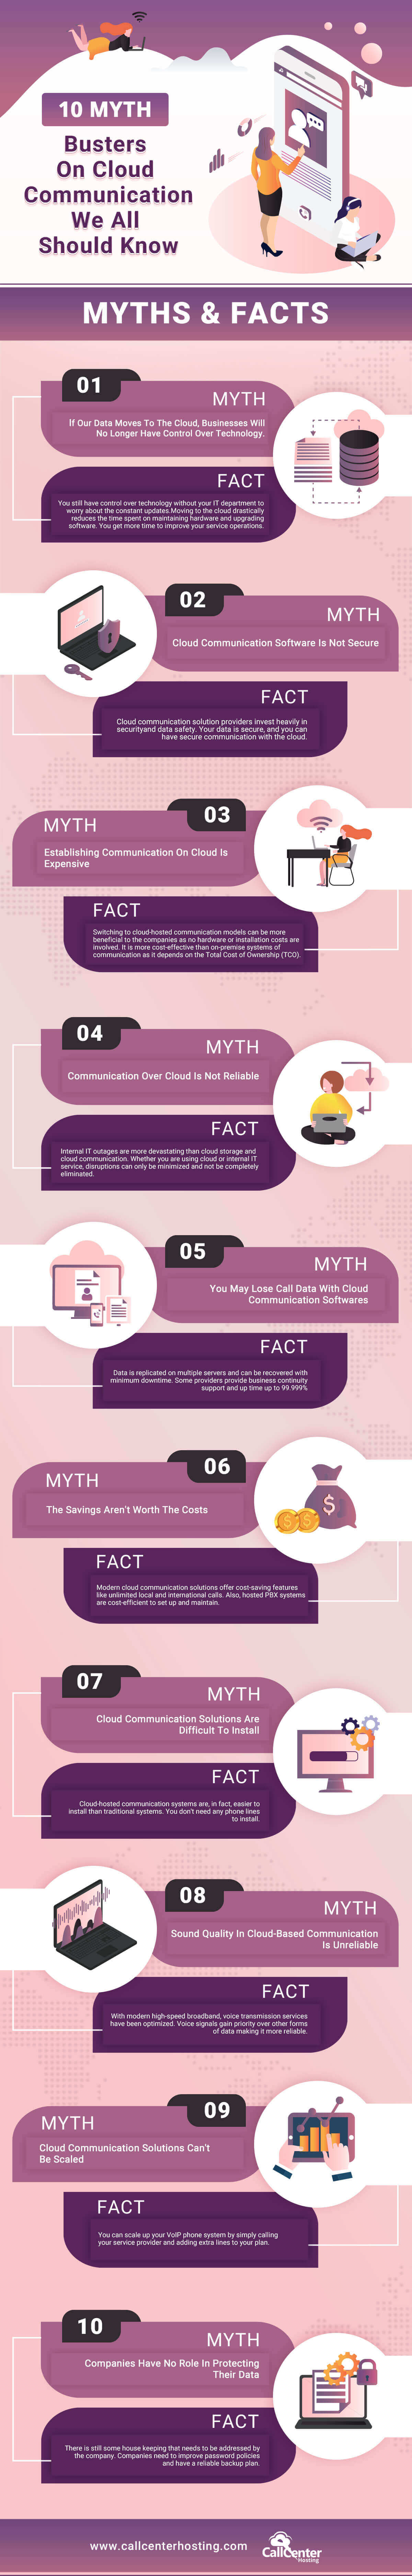 10 Myth Busters of Cloud Communication